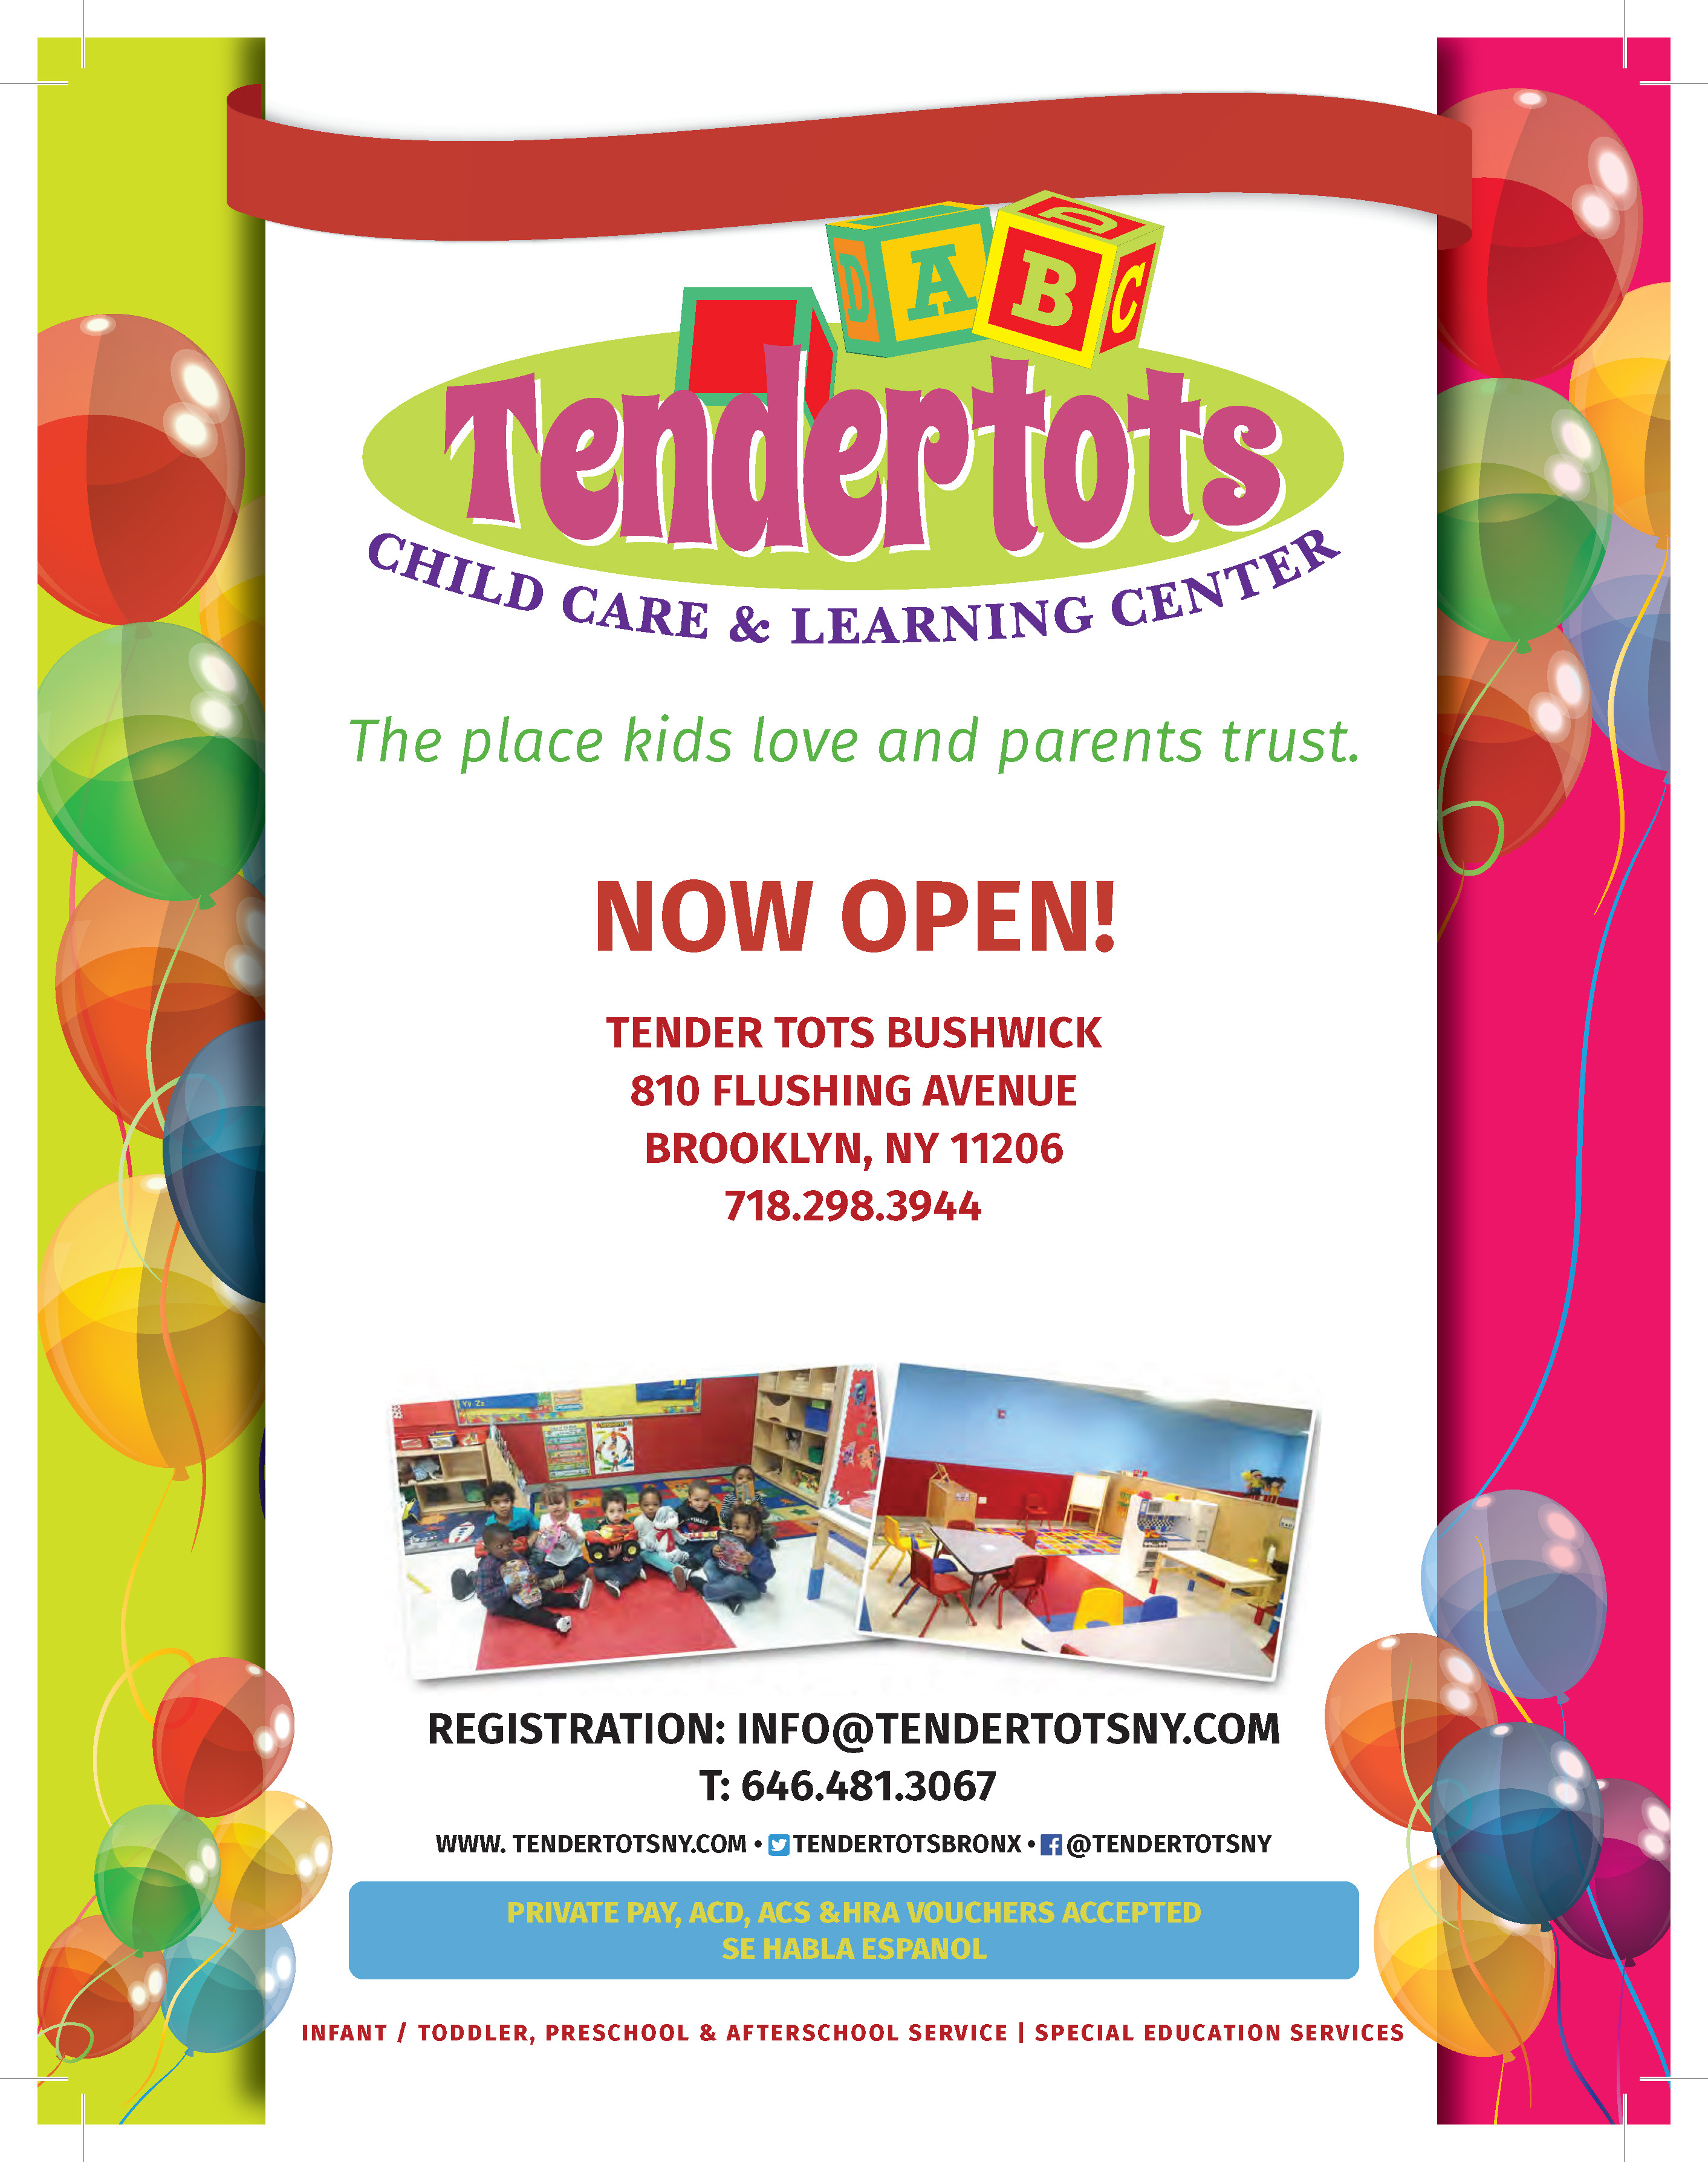 tender tots child care learning center bushwick willamsburg flyer bushwick